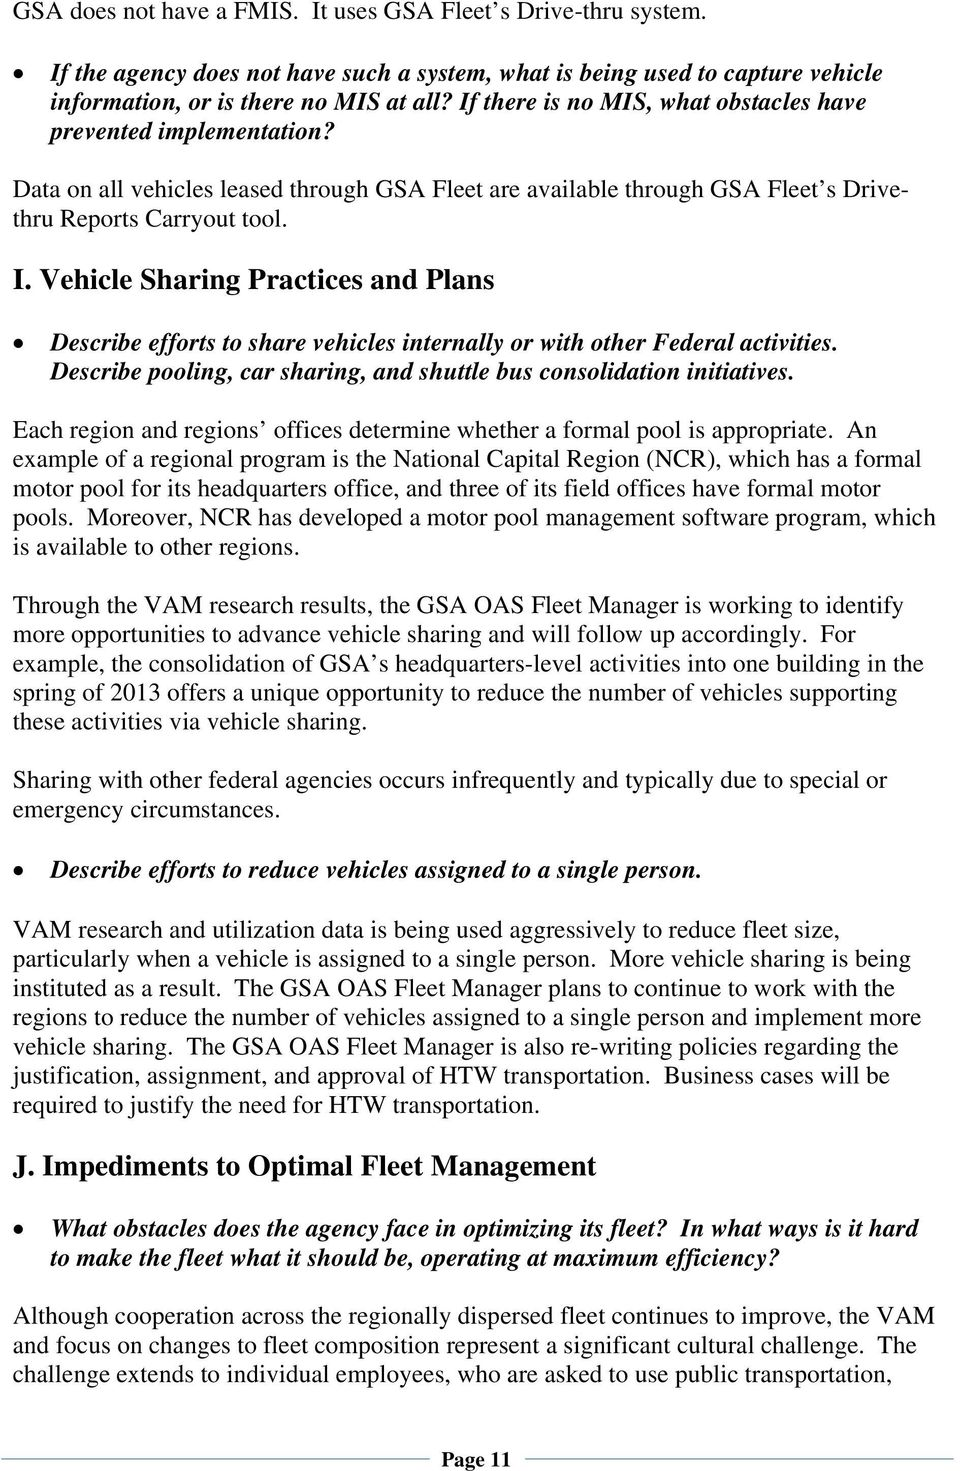 Vehicle Sharing Practices and Plans Describe efforts to share vehicles internally or with other Federal activities. Describe pooling, car sharing, and shuttle bus consolidation initiatives.